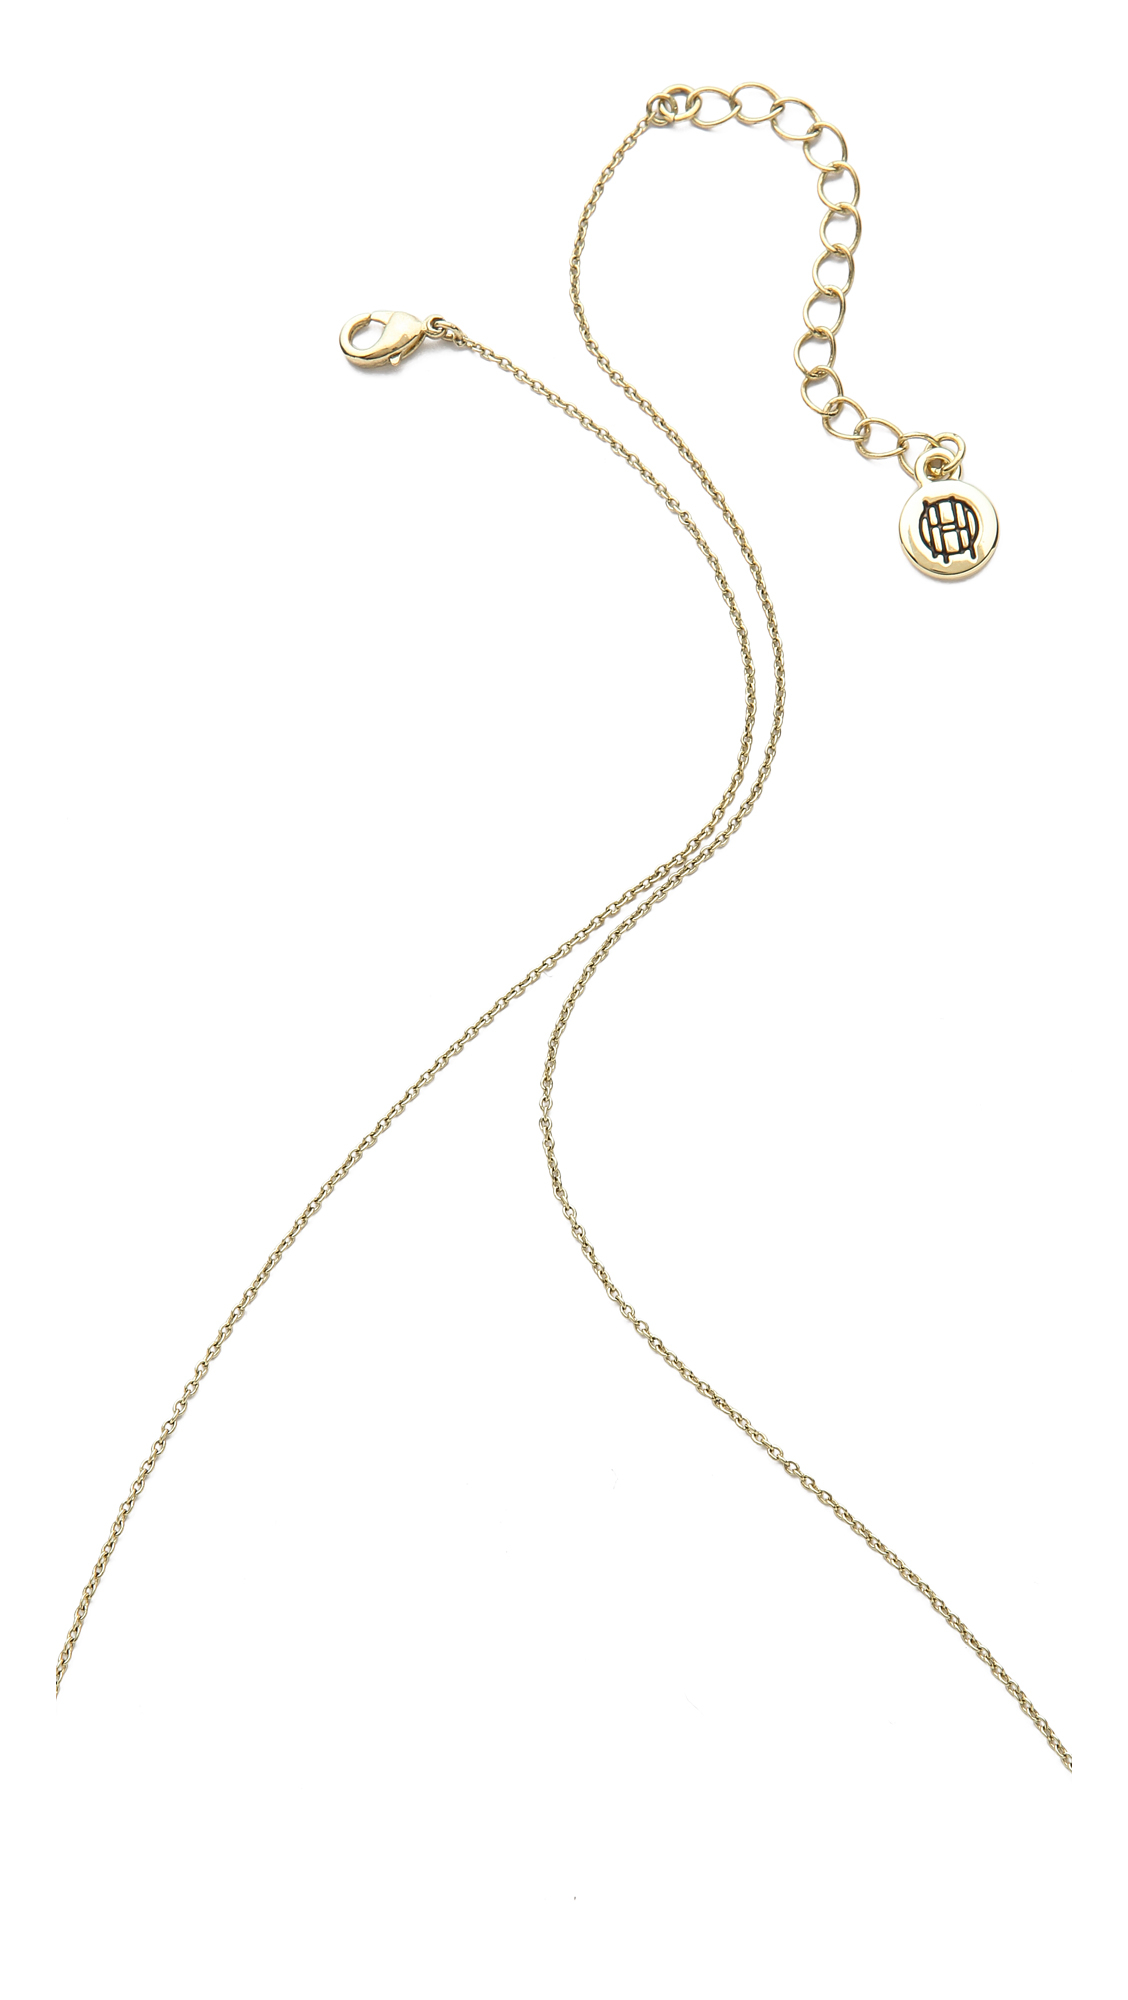 House of Harlow 1960 Glacier Pendant Necklace - Gold/Black/Clear in Metallic